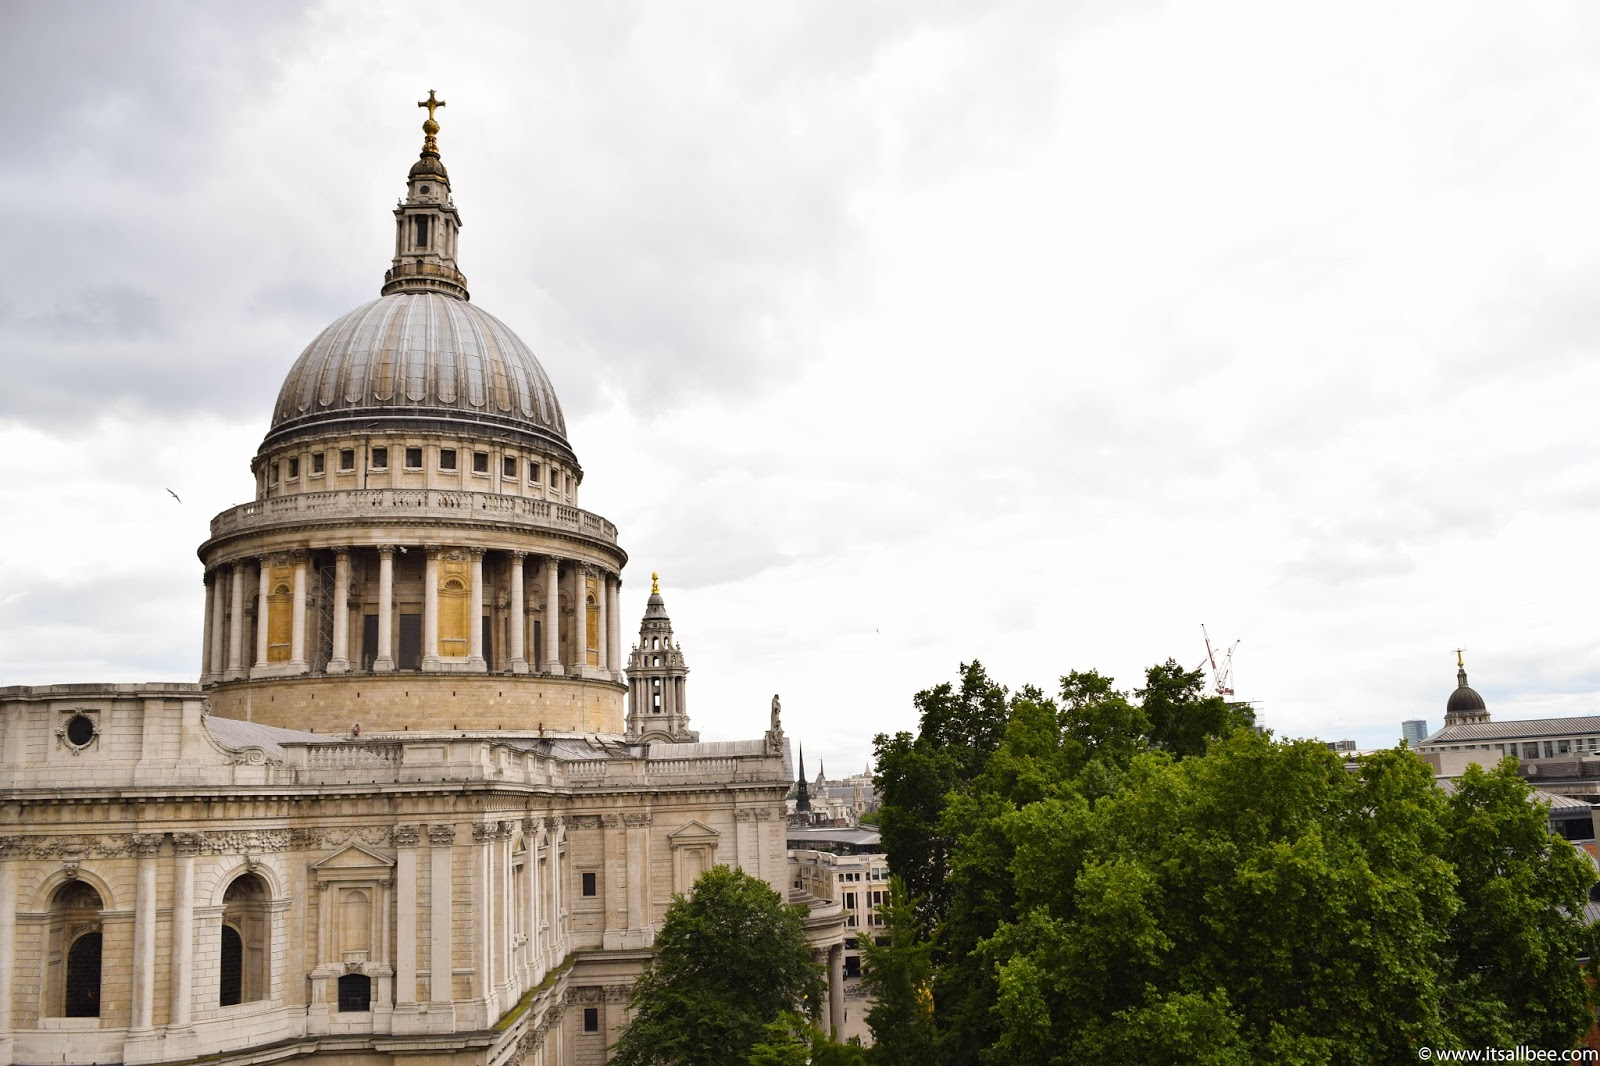 A 1 Day London Itinerary   A Locals Guide to London #itsallbee #traveltips #bloggers #London #UK